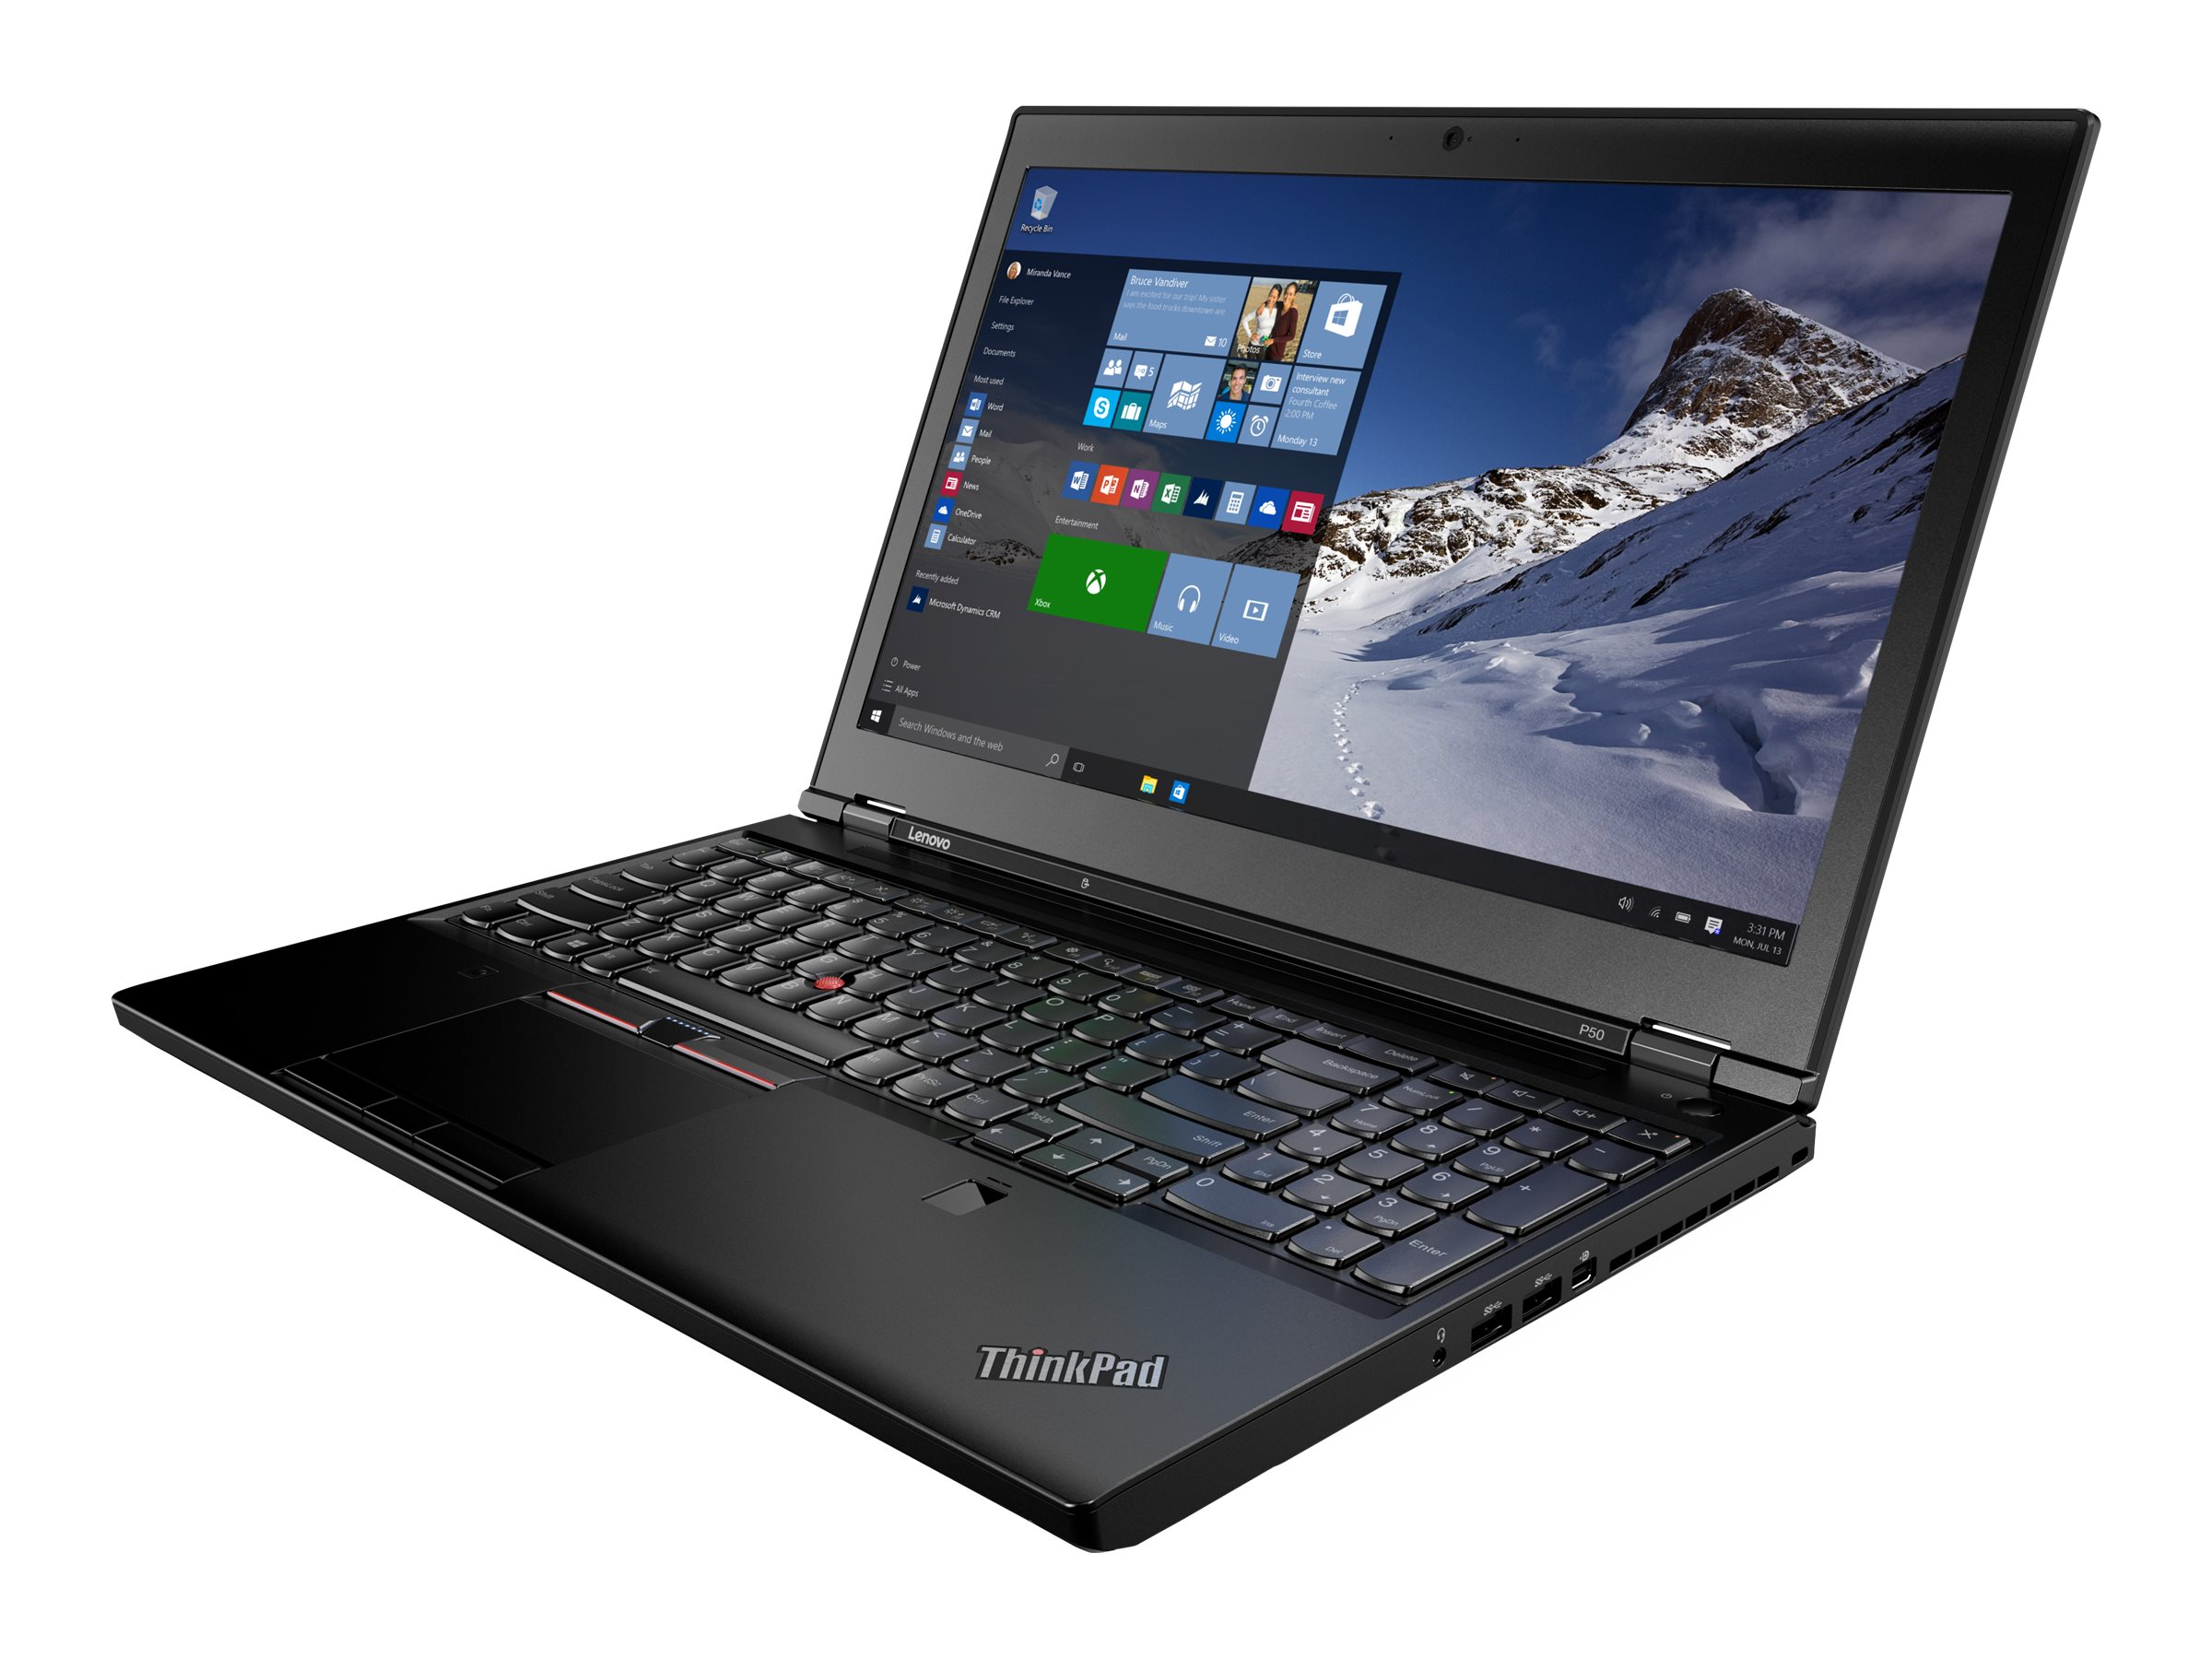 Lenovo TopSeller ThinkPad P50 Core i7-6820HQ 2.7GHz 8GB 256GB SSD ac BT FR 6C M1000M XR 15.6 FHD MT W10P64